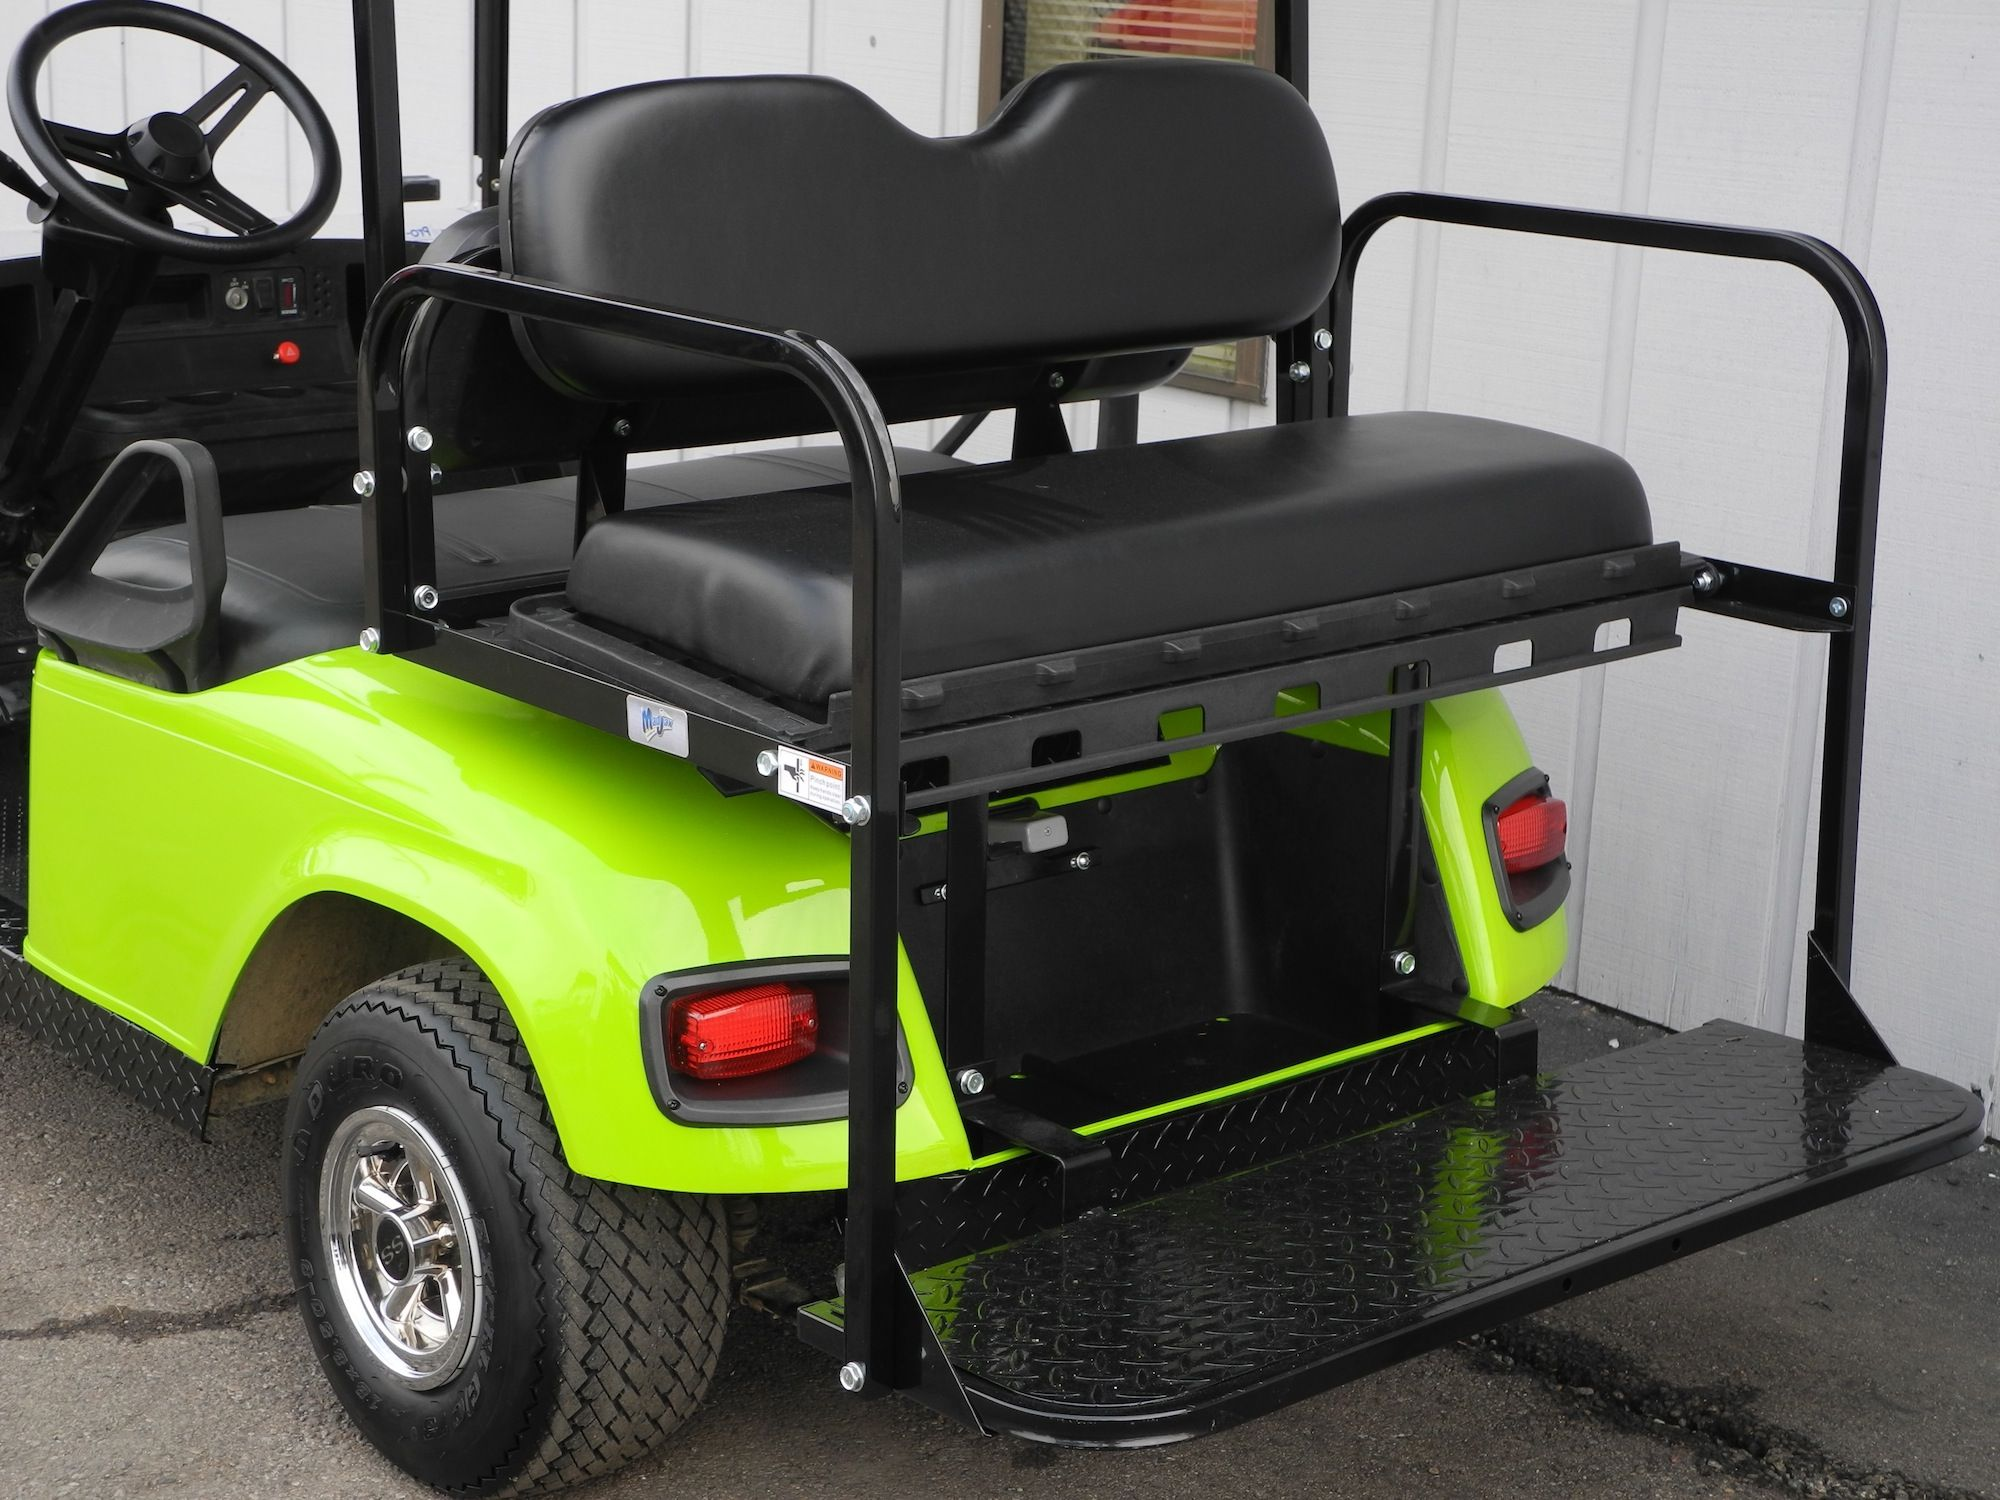 We sell A LOT of golf car rear flip seats. And our opinion for the New Yamaha Golf Cart Frame Html on used golf cart frame, ezgo golf cart frame, par car golf cart frame, gem golf cart frame, hyundai golf cart frame, golf cart aluminum frame, stripped down golf cart frame, gas golf cart frame, cushman golf cart frame, club car golf cart frame, make golf cart frame, harley golf cart frame, limo golf cart frame,